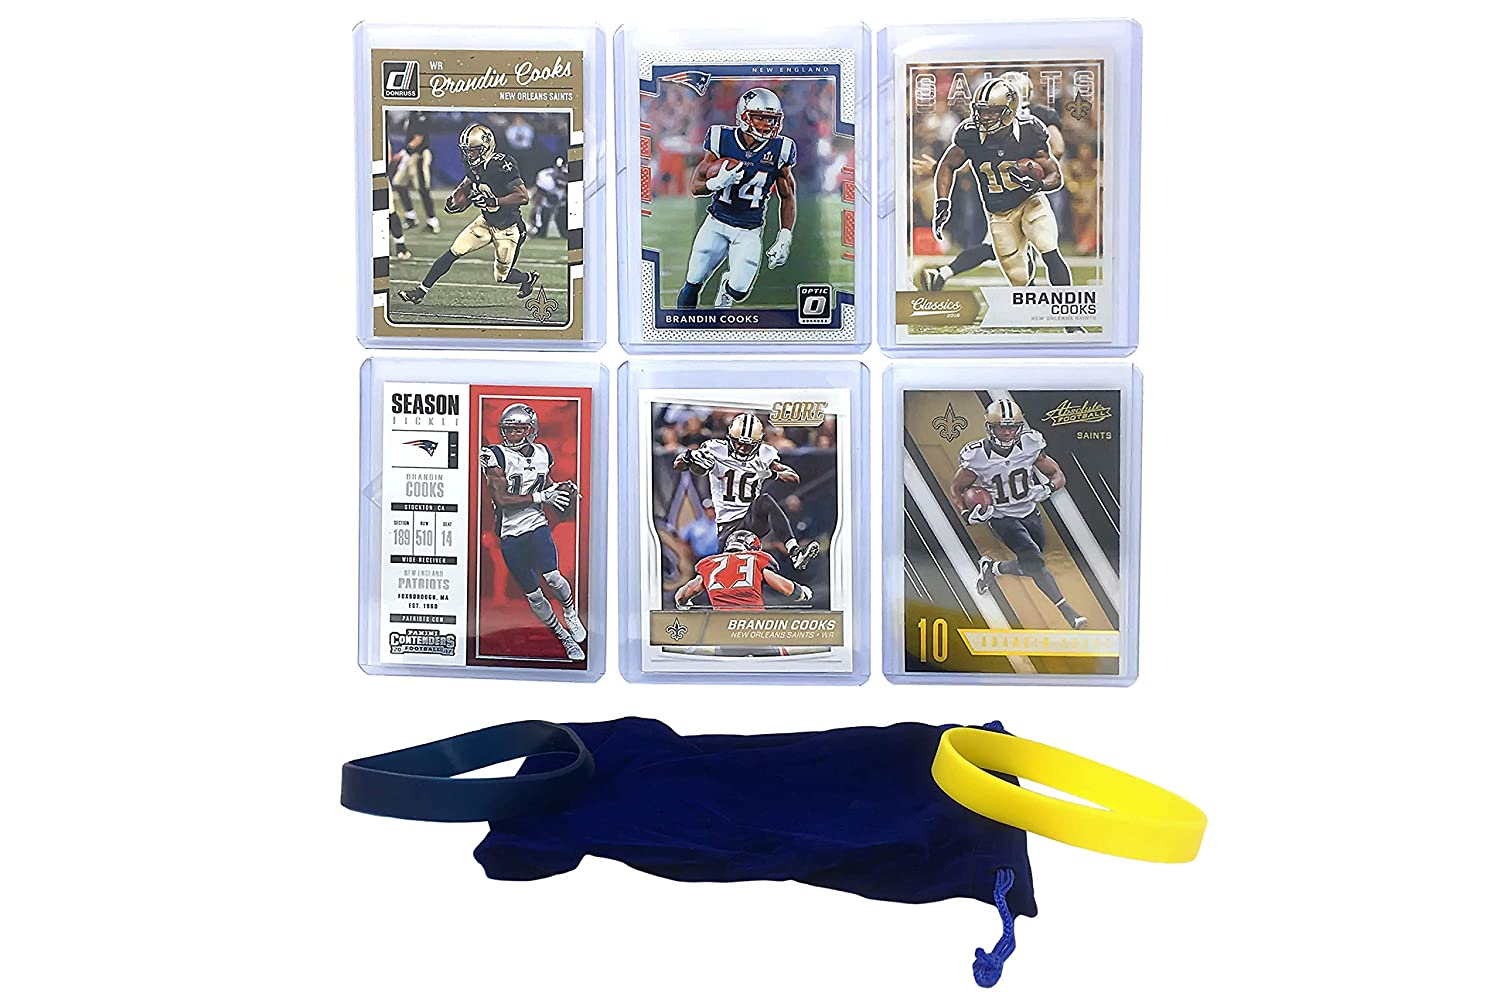 Brandin Cooks Football Cards (6) Assorted Bundle - Los Angeles Rams Trading Card Gift Set Panini Bowman Topps